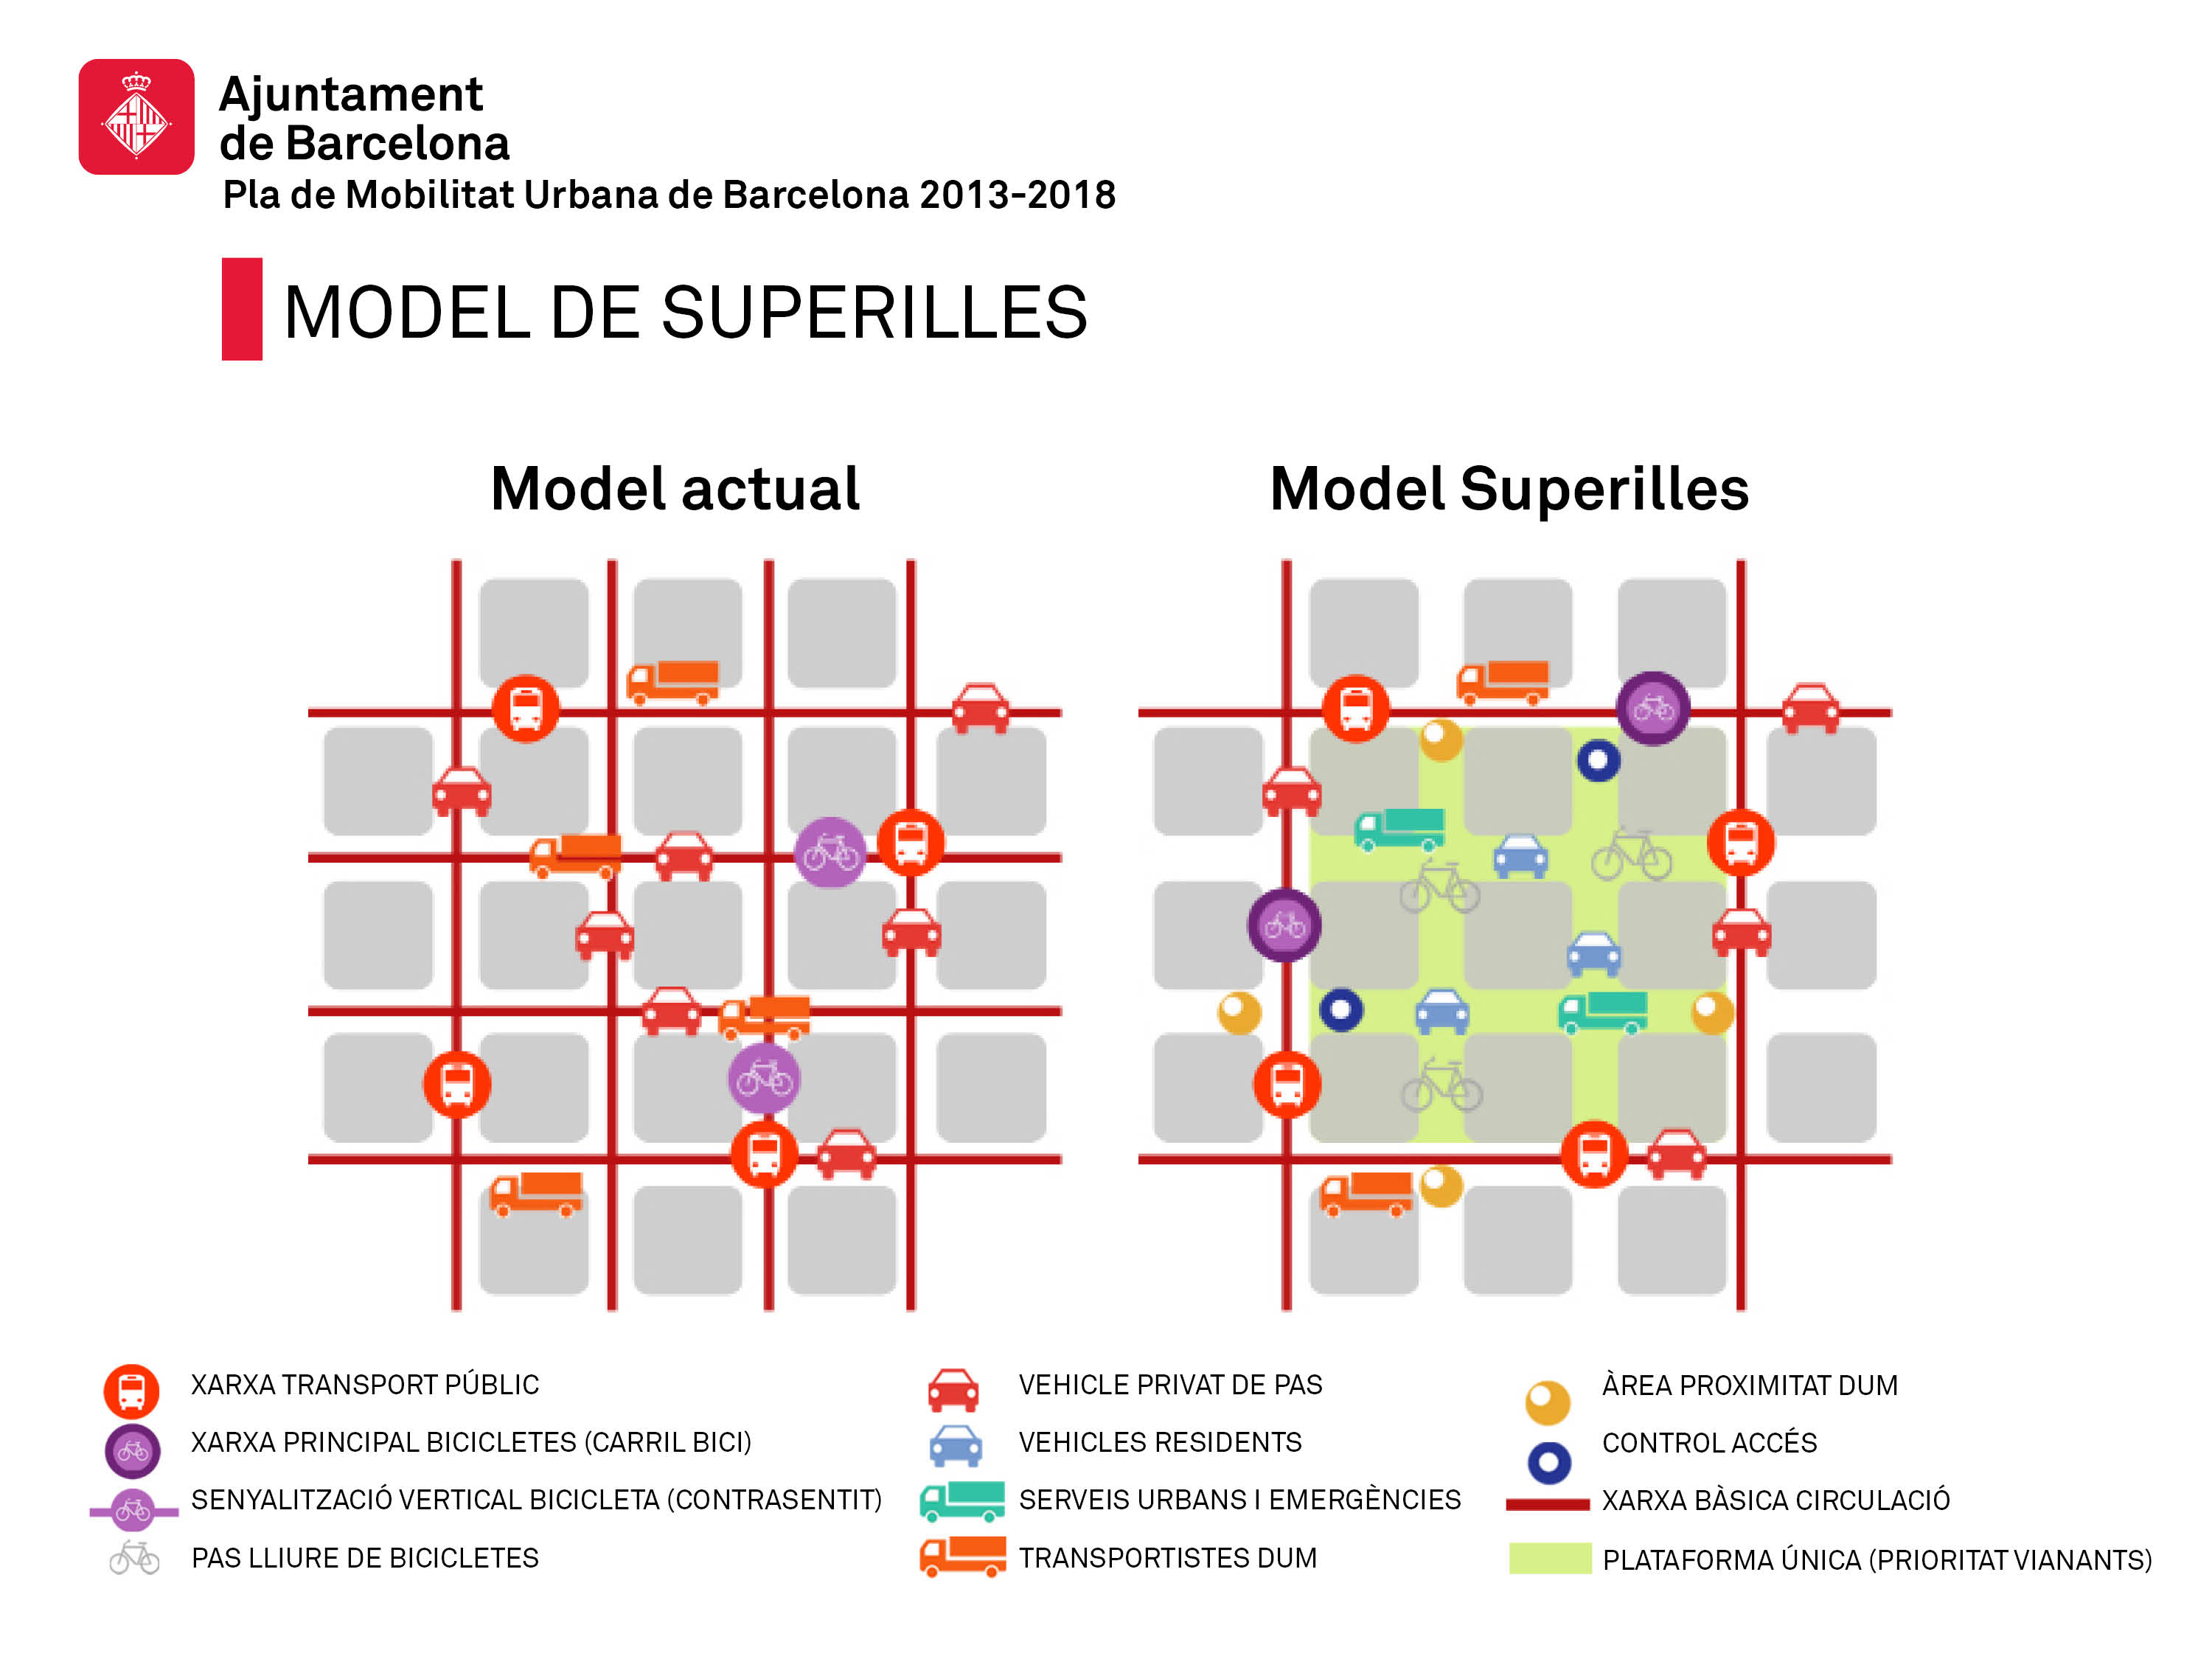 Photo from the Urban Mobility Plan of Barcelona (PMU 2013-2018) of the City Council Barcelona - Ajuntament de Barcelona